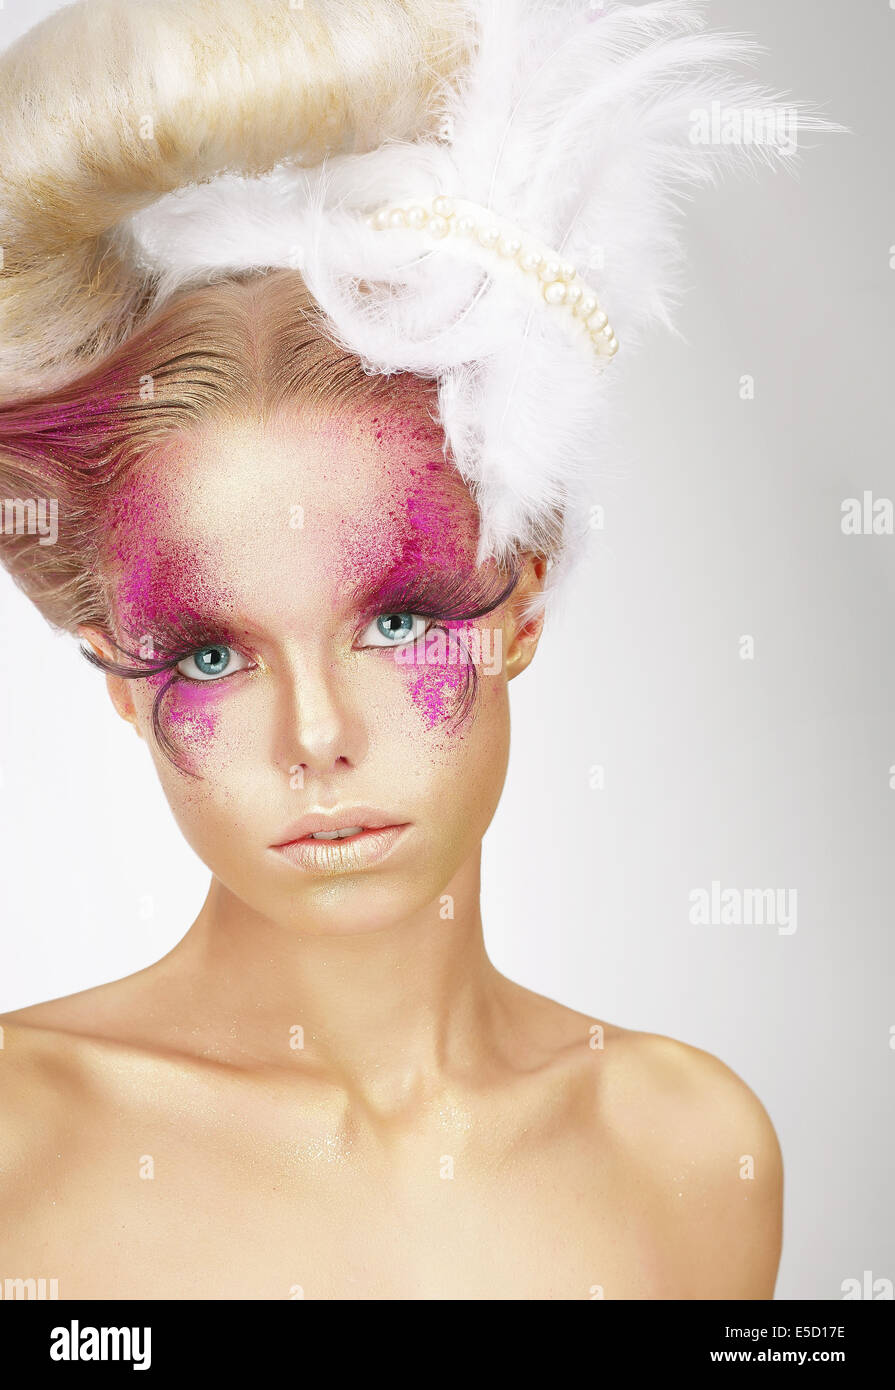 Showy Woman with Fuzzy Feathers and Fantastic Art Makeup - Stock Image